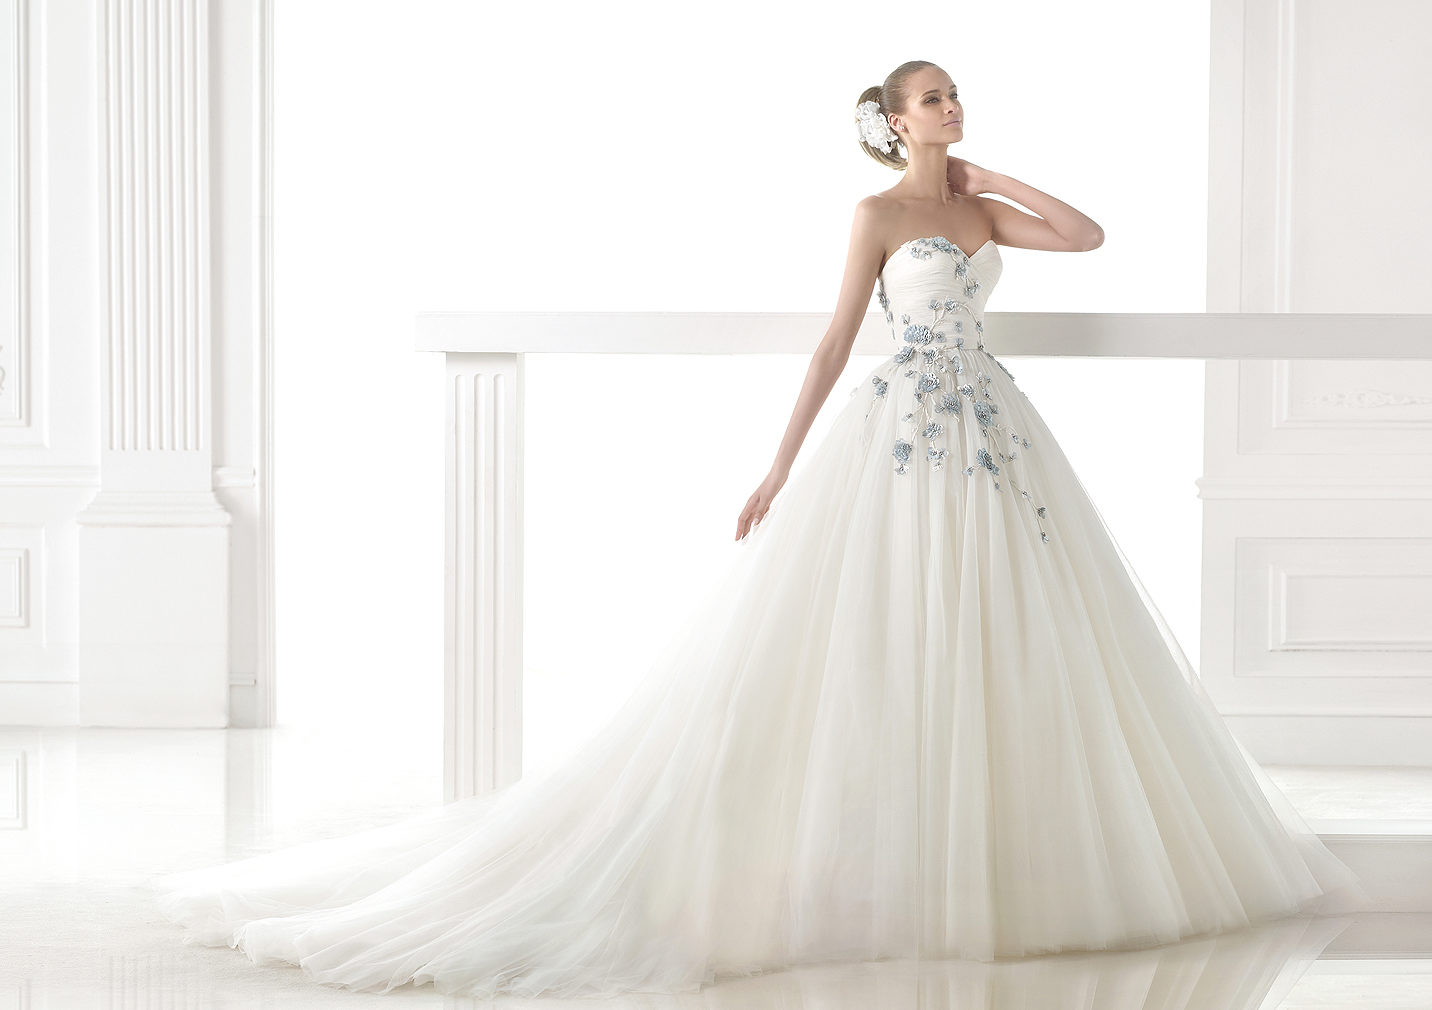 The Top 10 Wedding Dress Designers